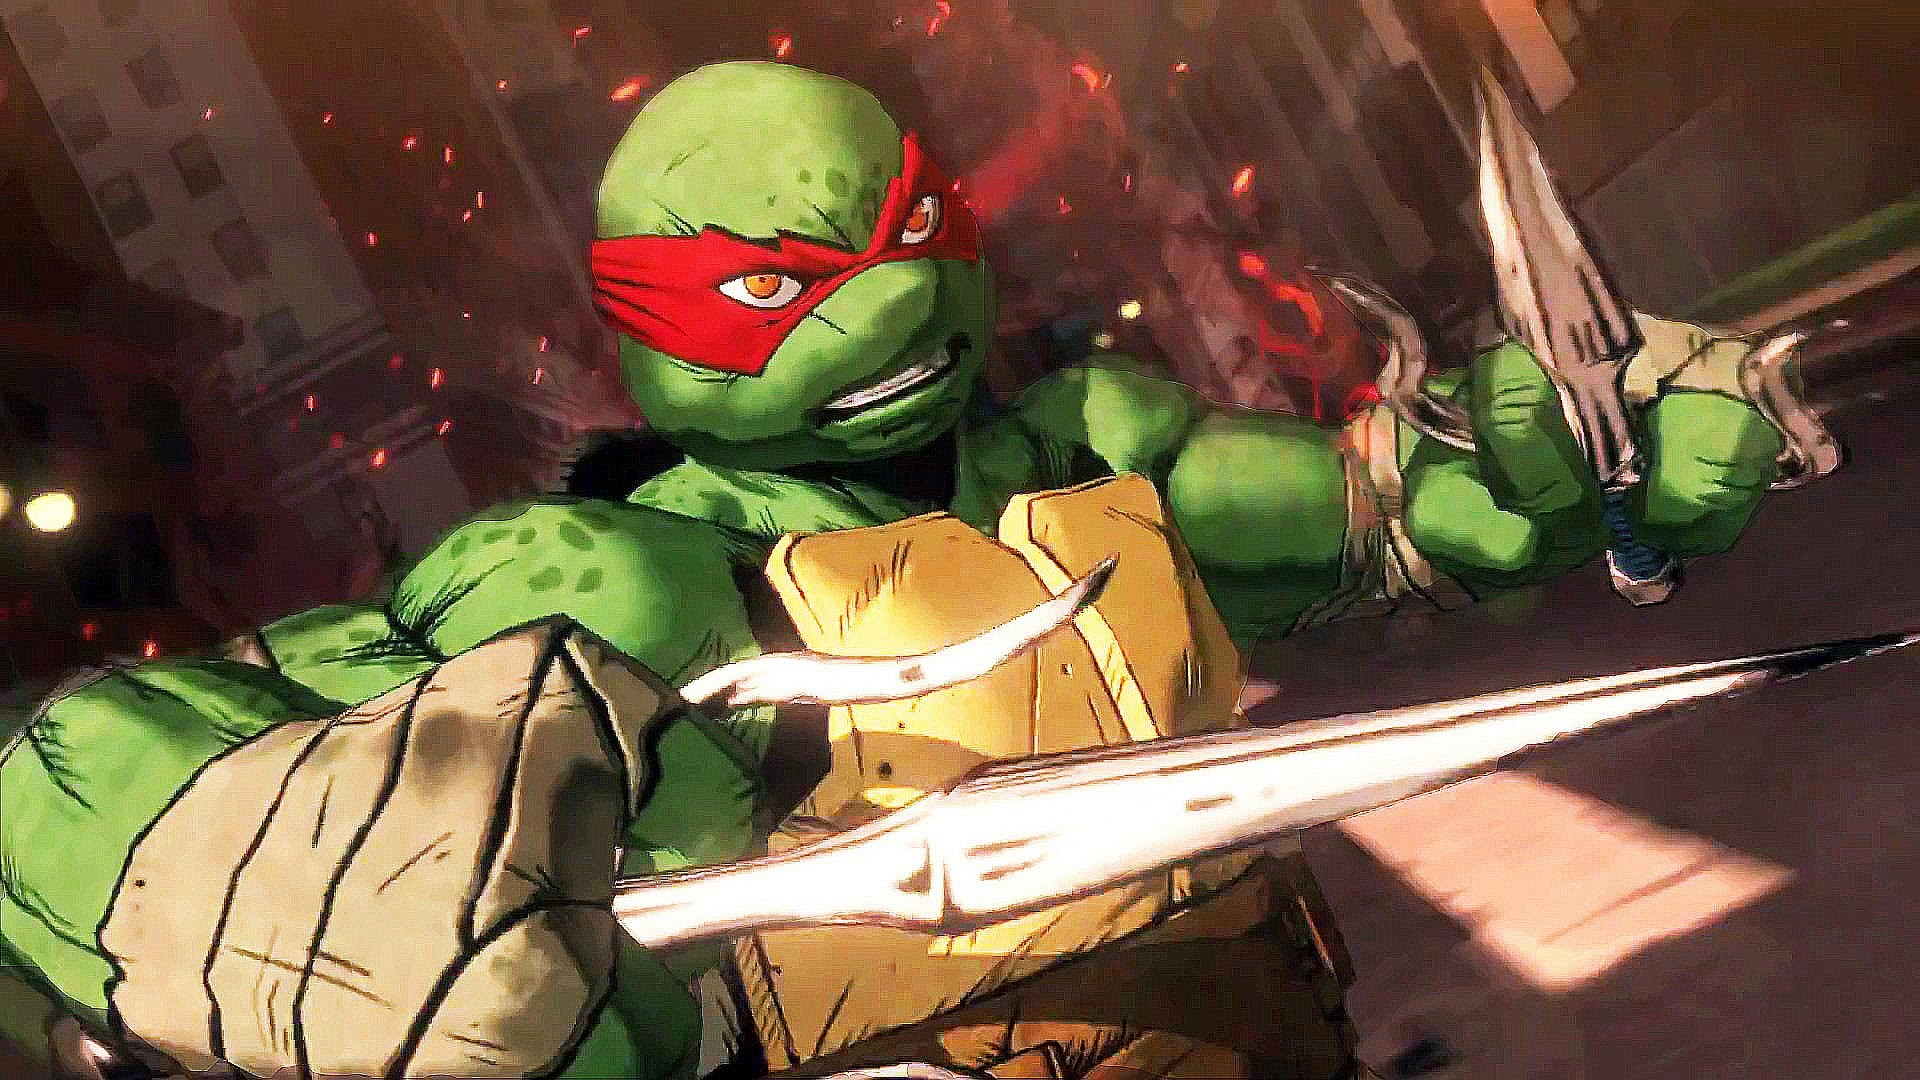 1920x1080 PS4 - Teenage Mutant Ninja Turtles : Mutants in Manhattan Trailer